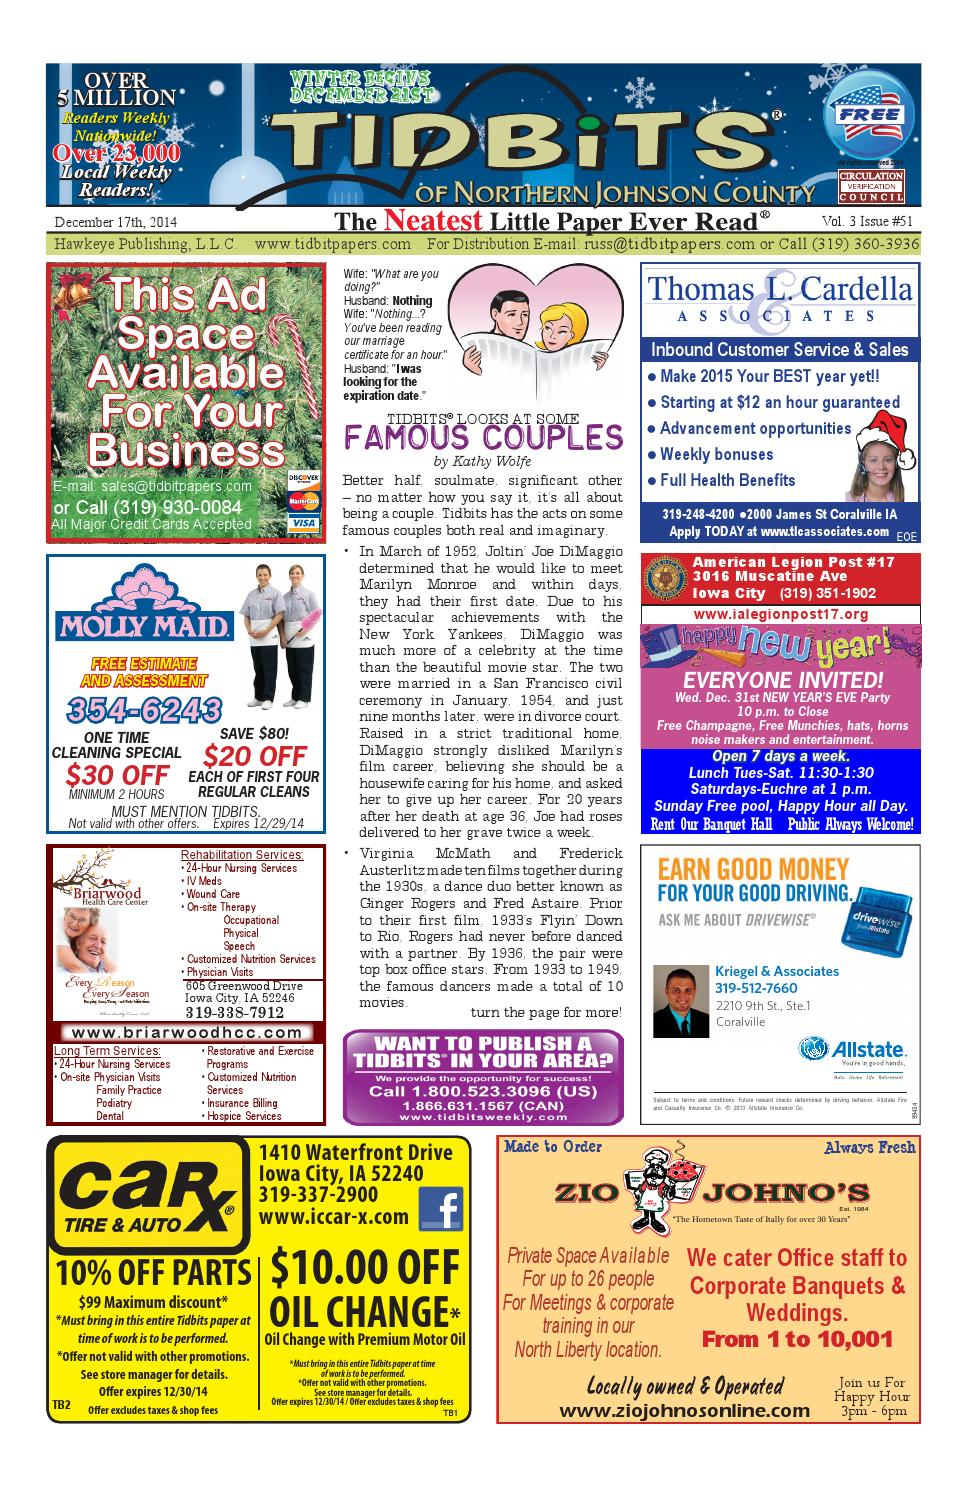 12 17 14 tidbits nj v3 issue 51 online by Russ Swart - issuu